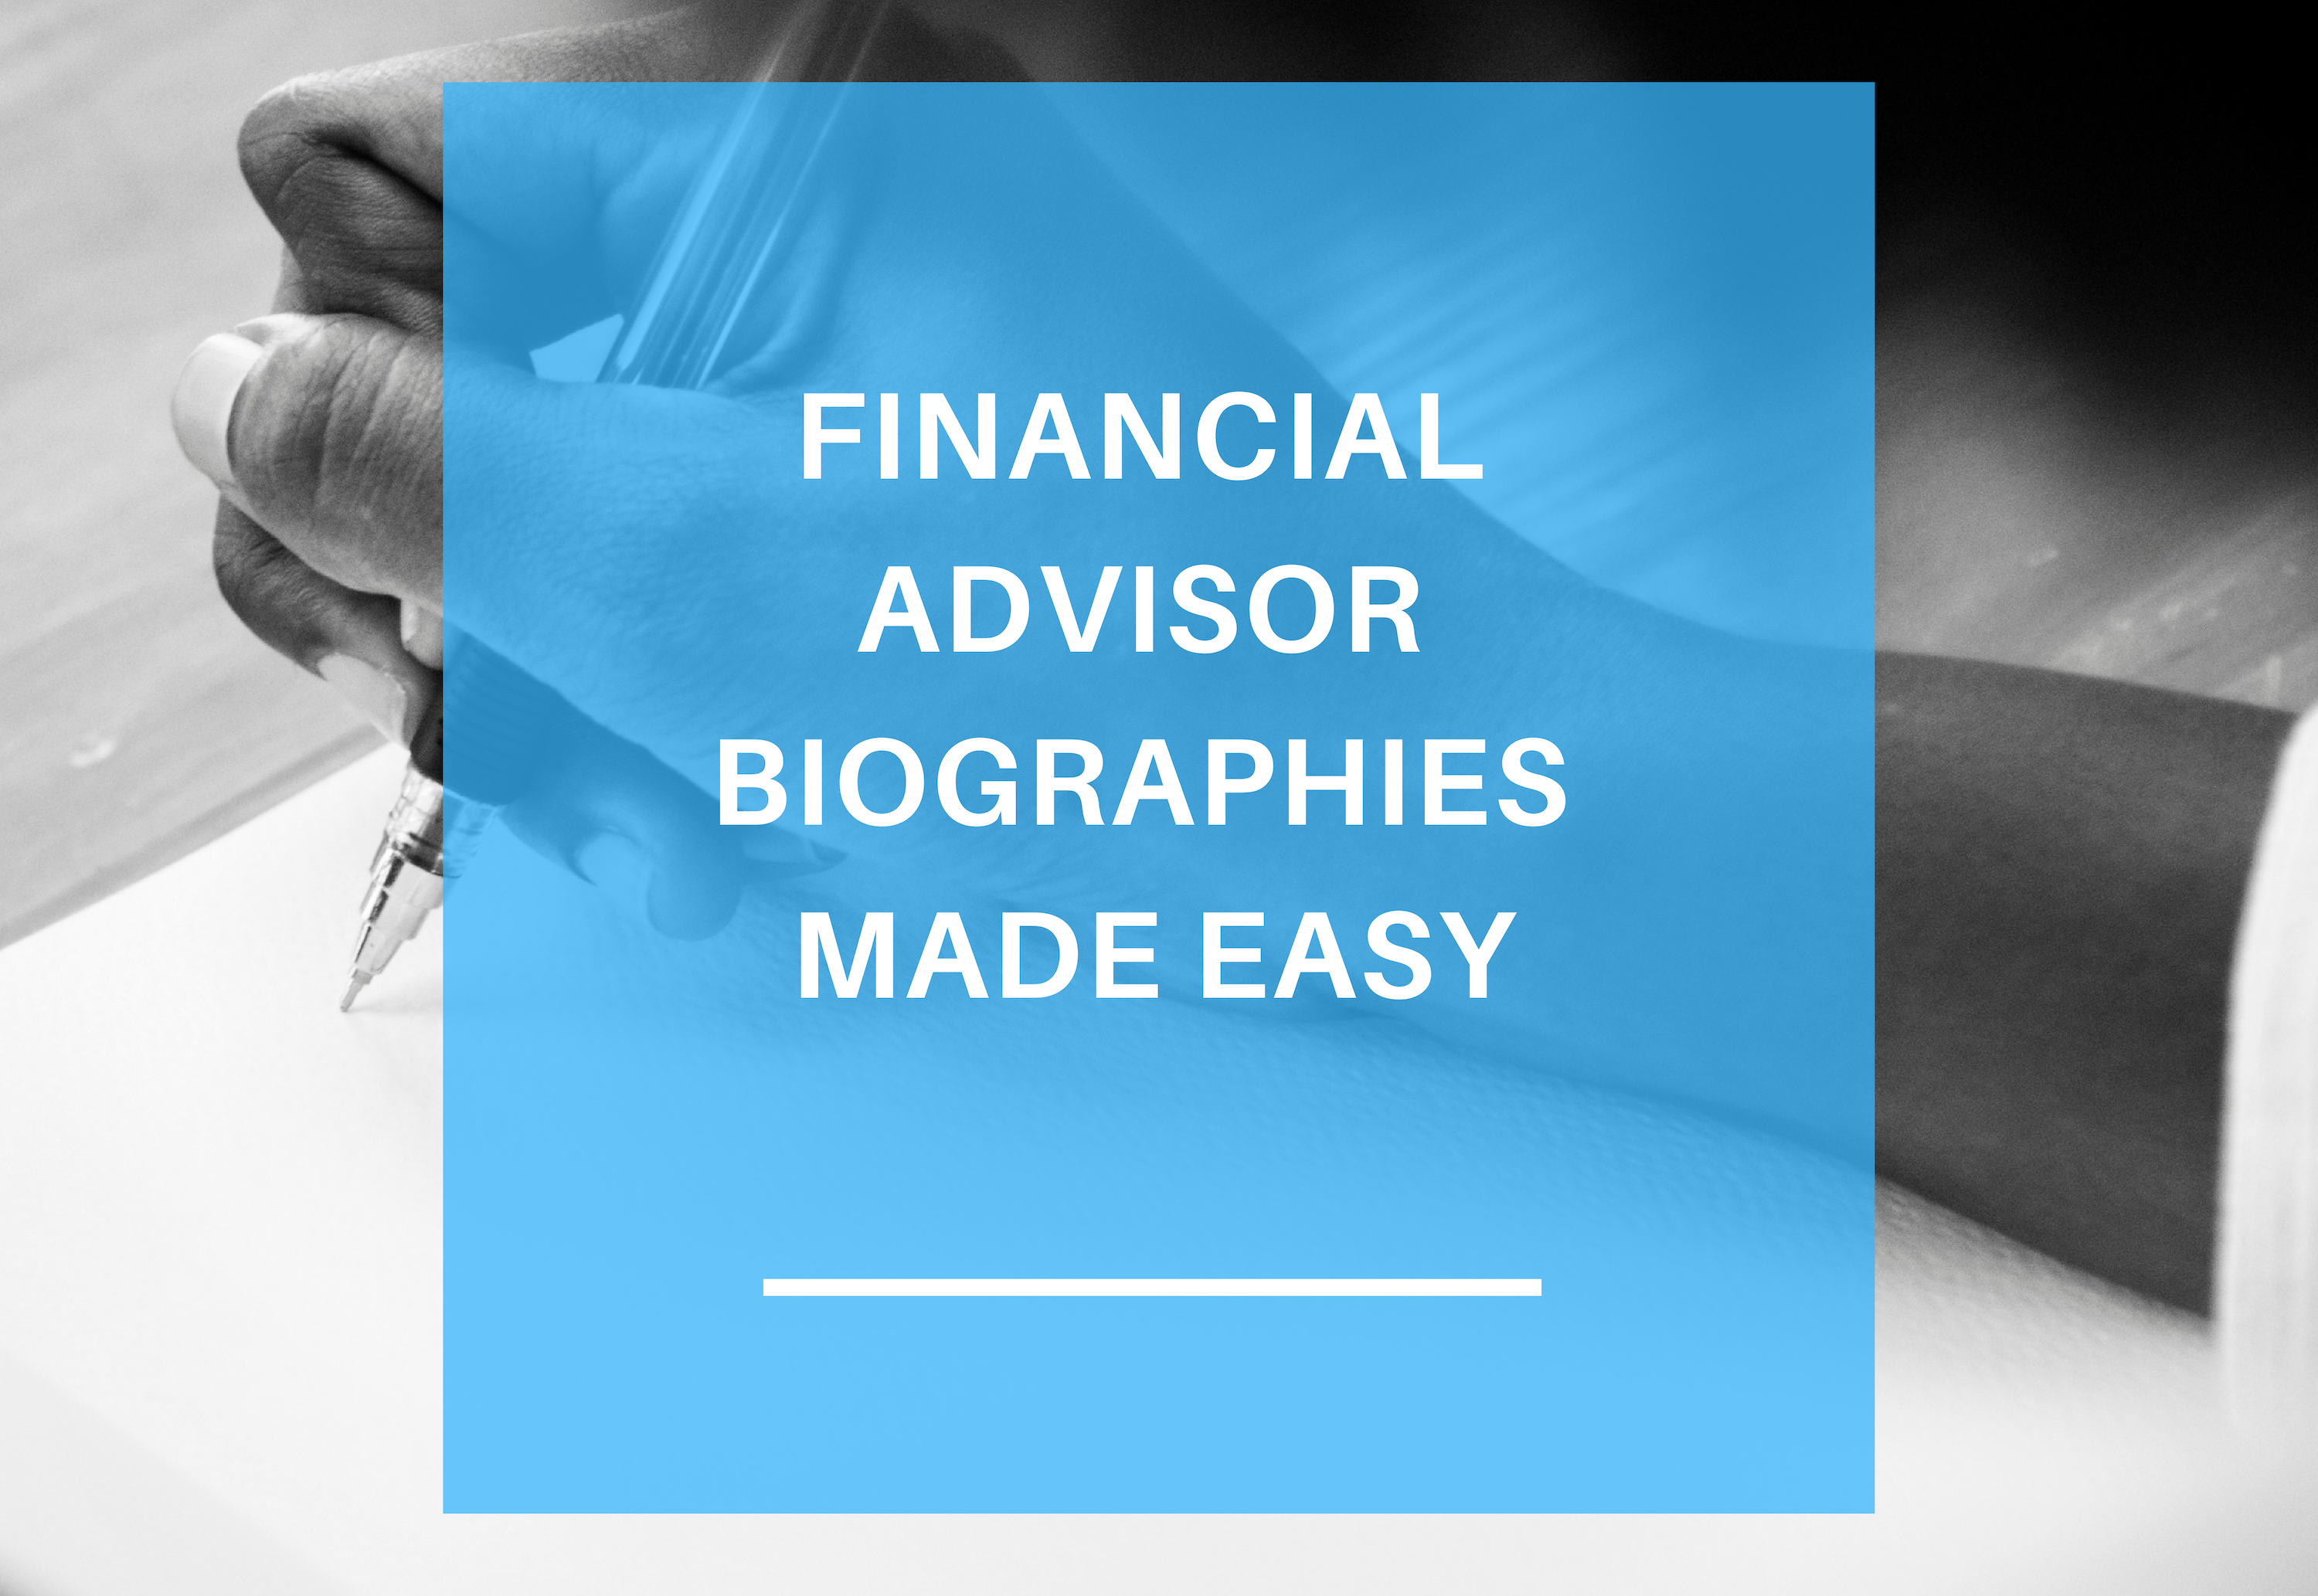 Financial Advisor Biographies Made Easy